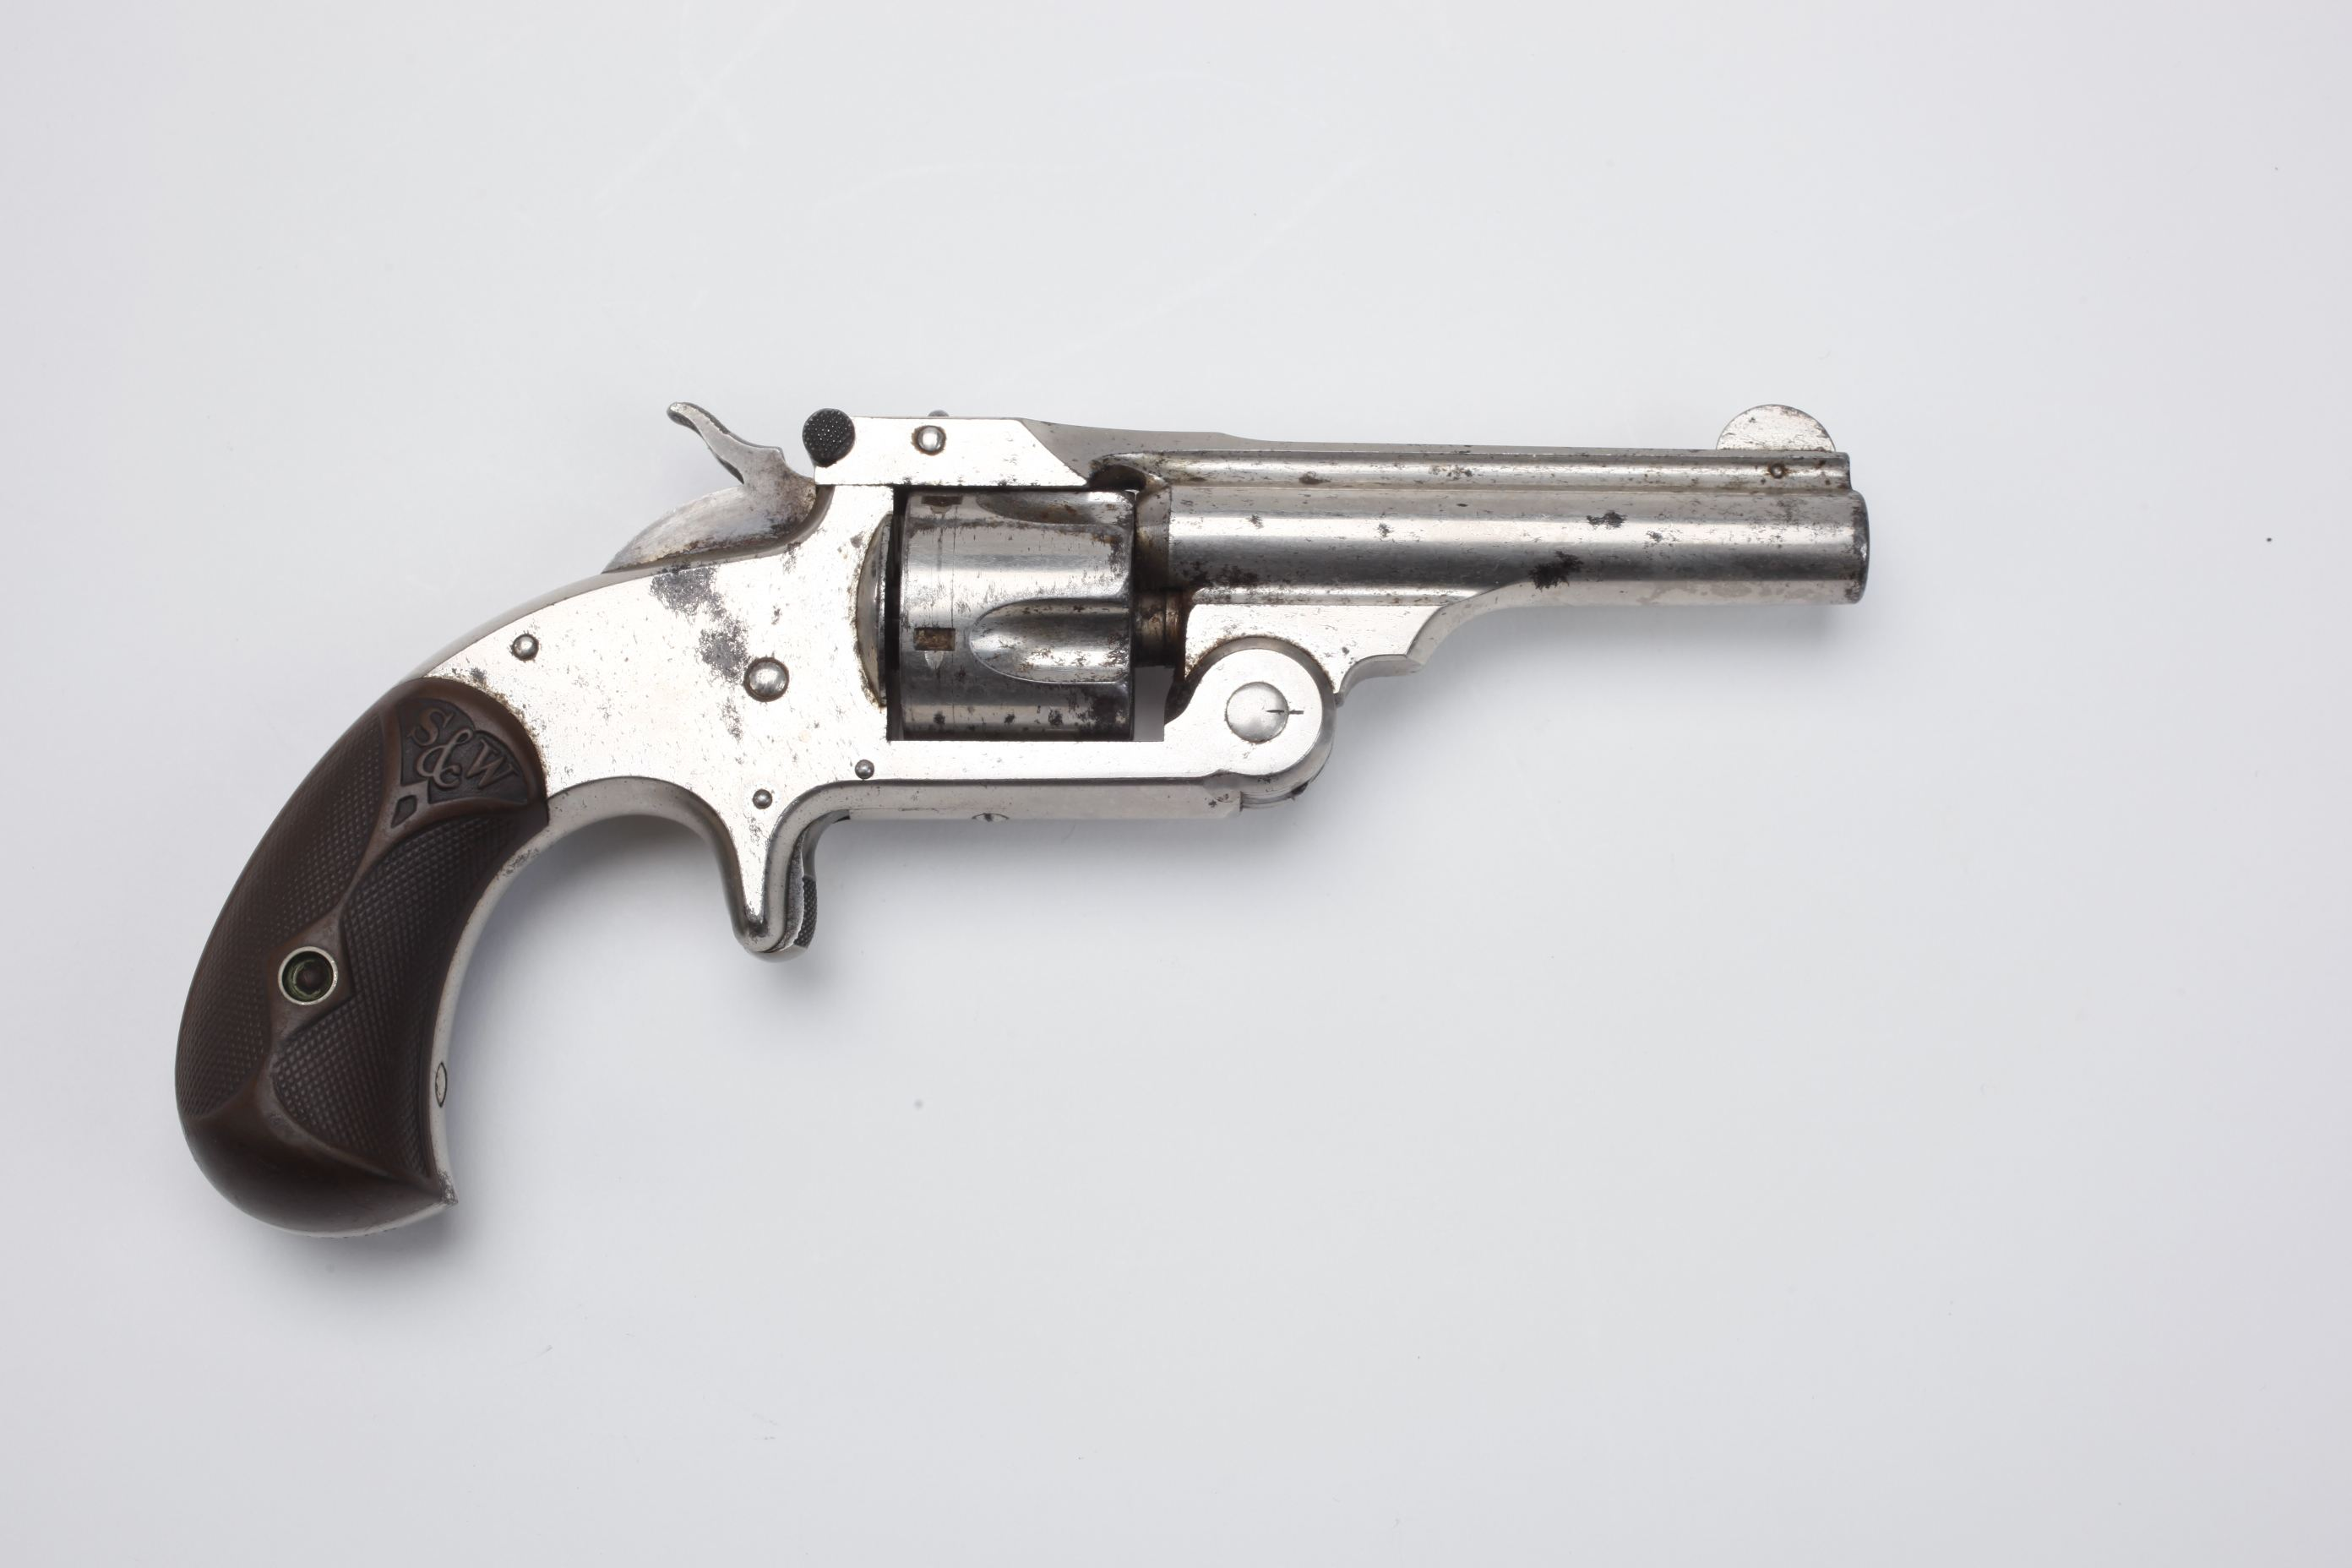 Smith & Wesson Model No one and one half revolver